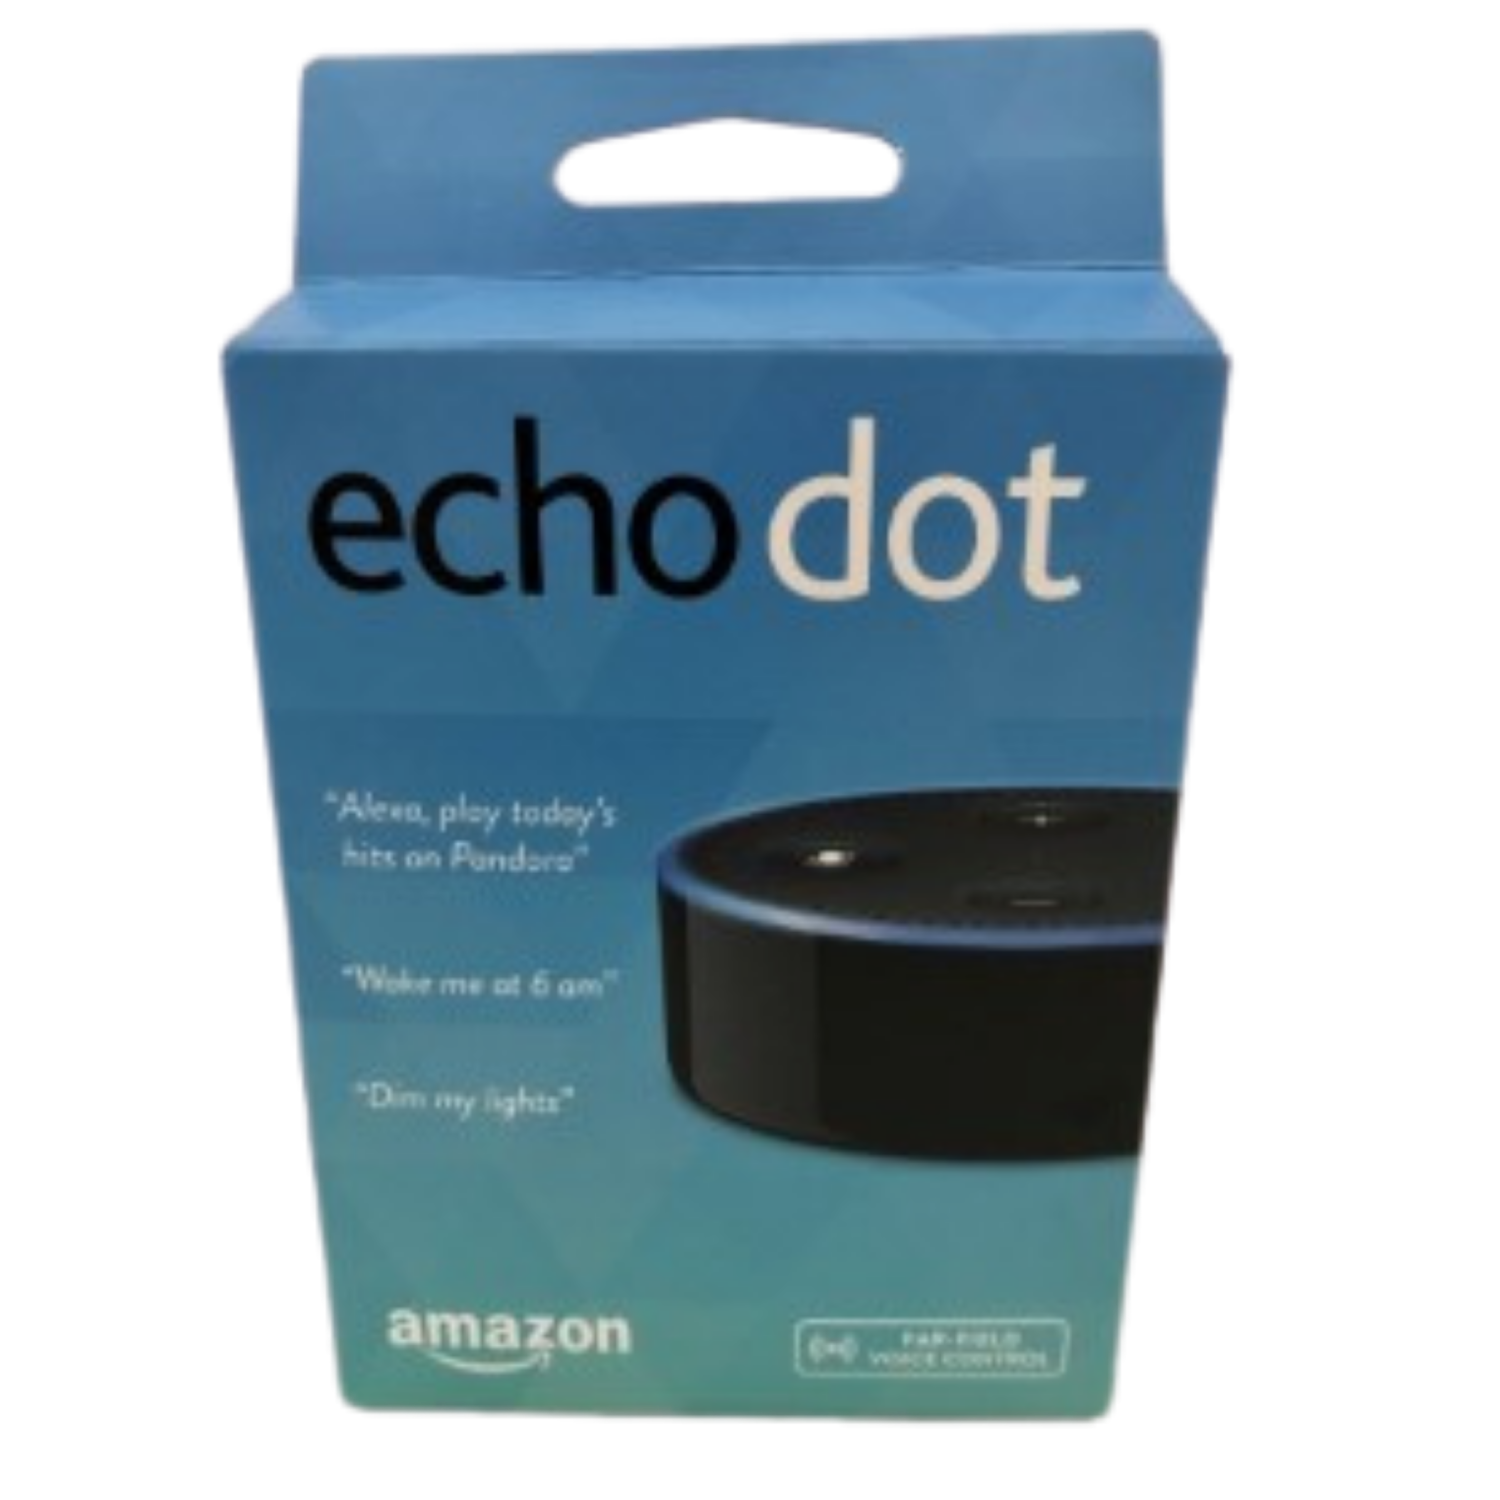 Amazon Brand New Echo Dot 2nd Generation